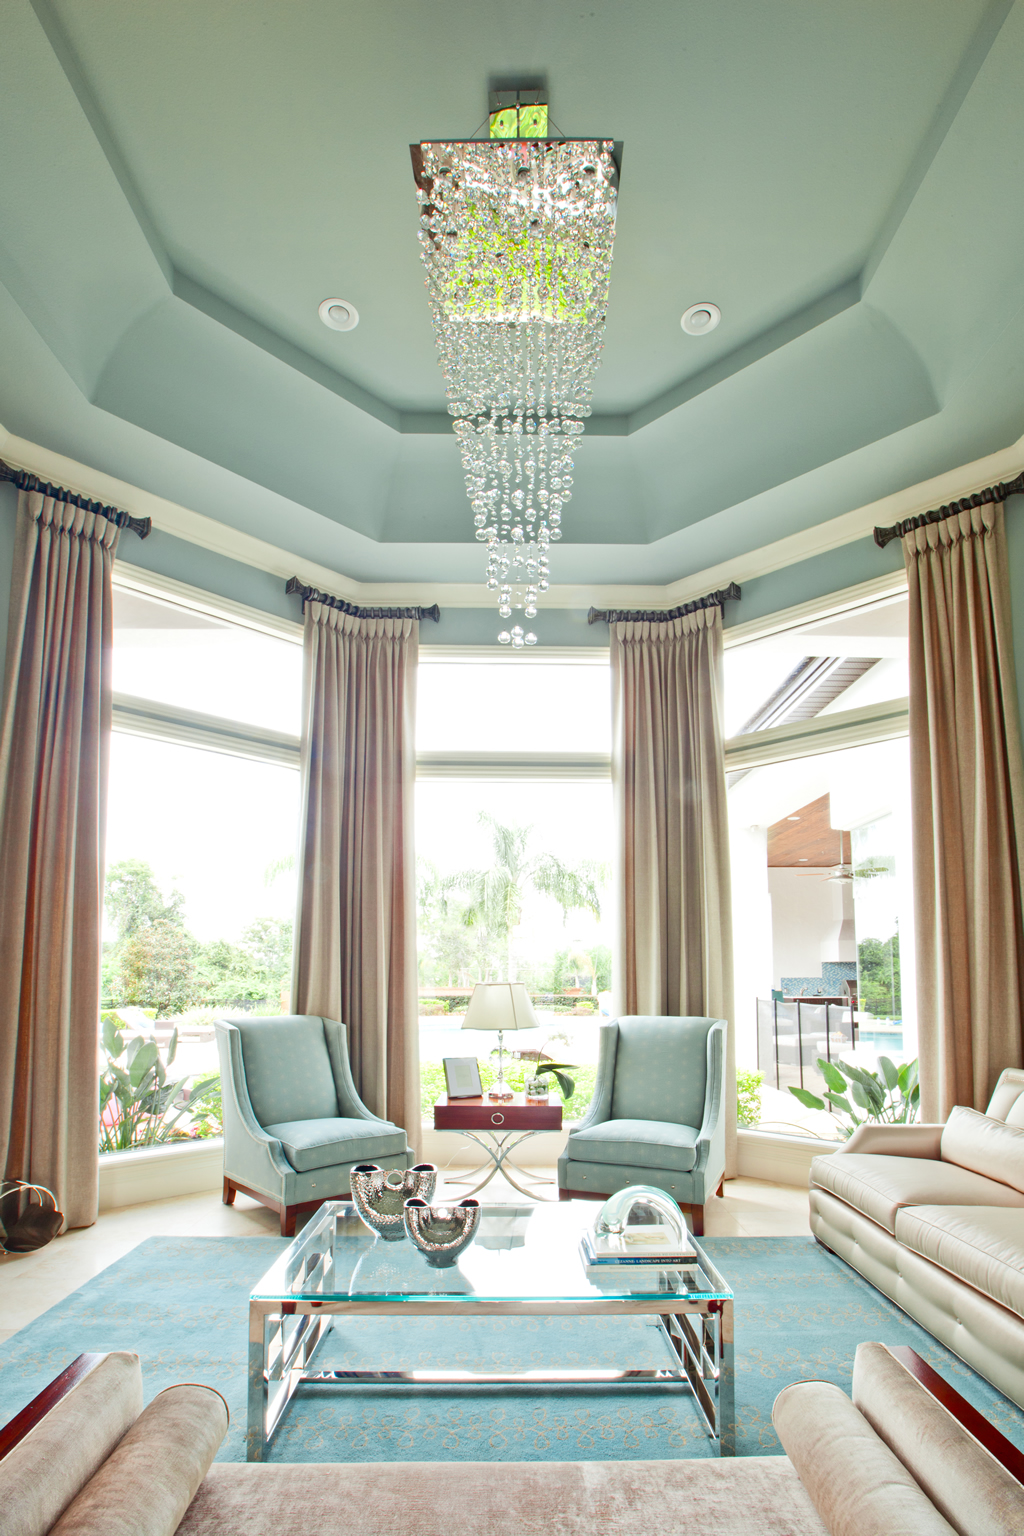 Chic furnished living room with chandelier